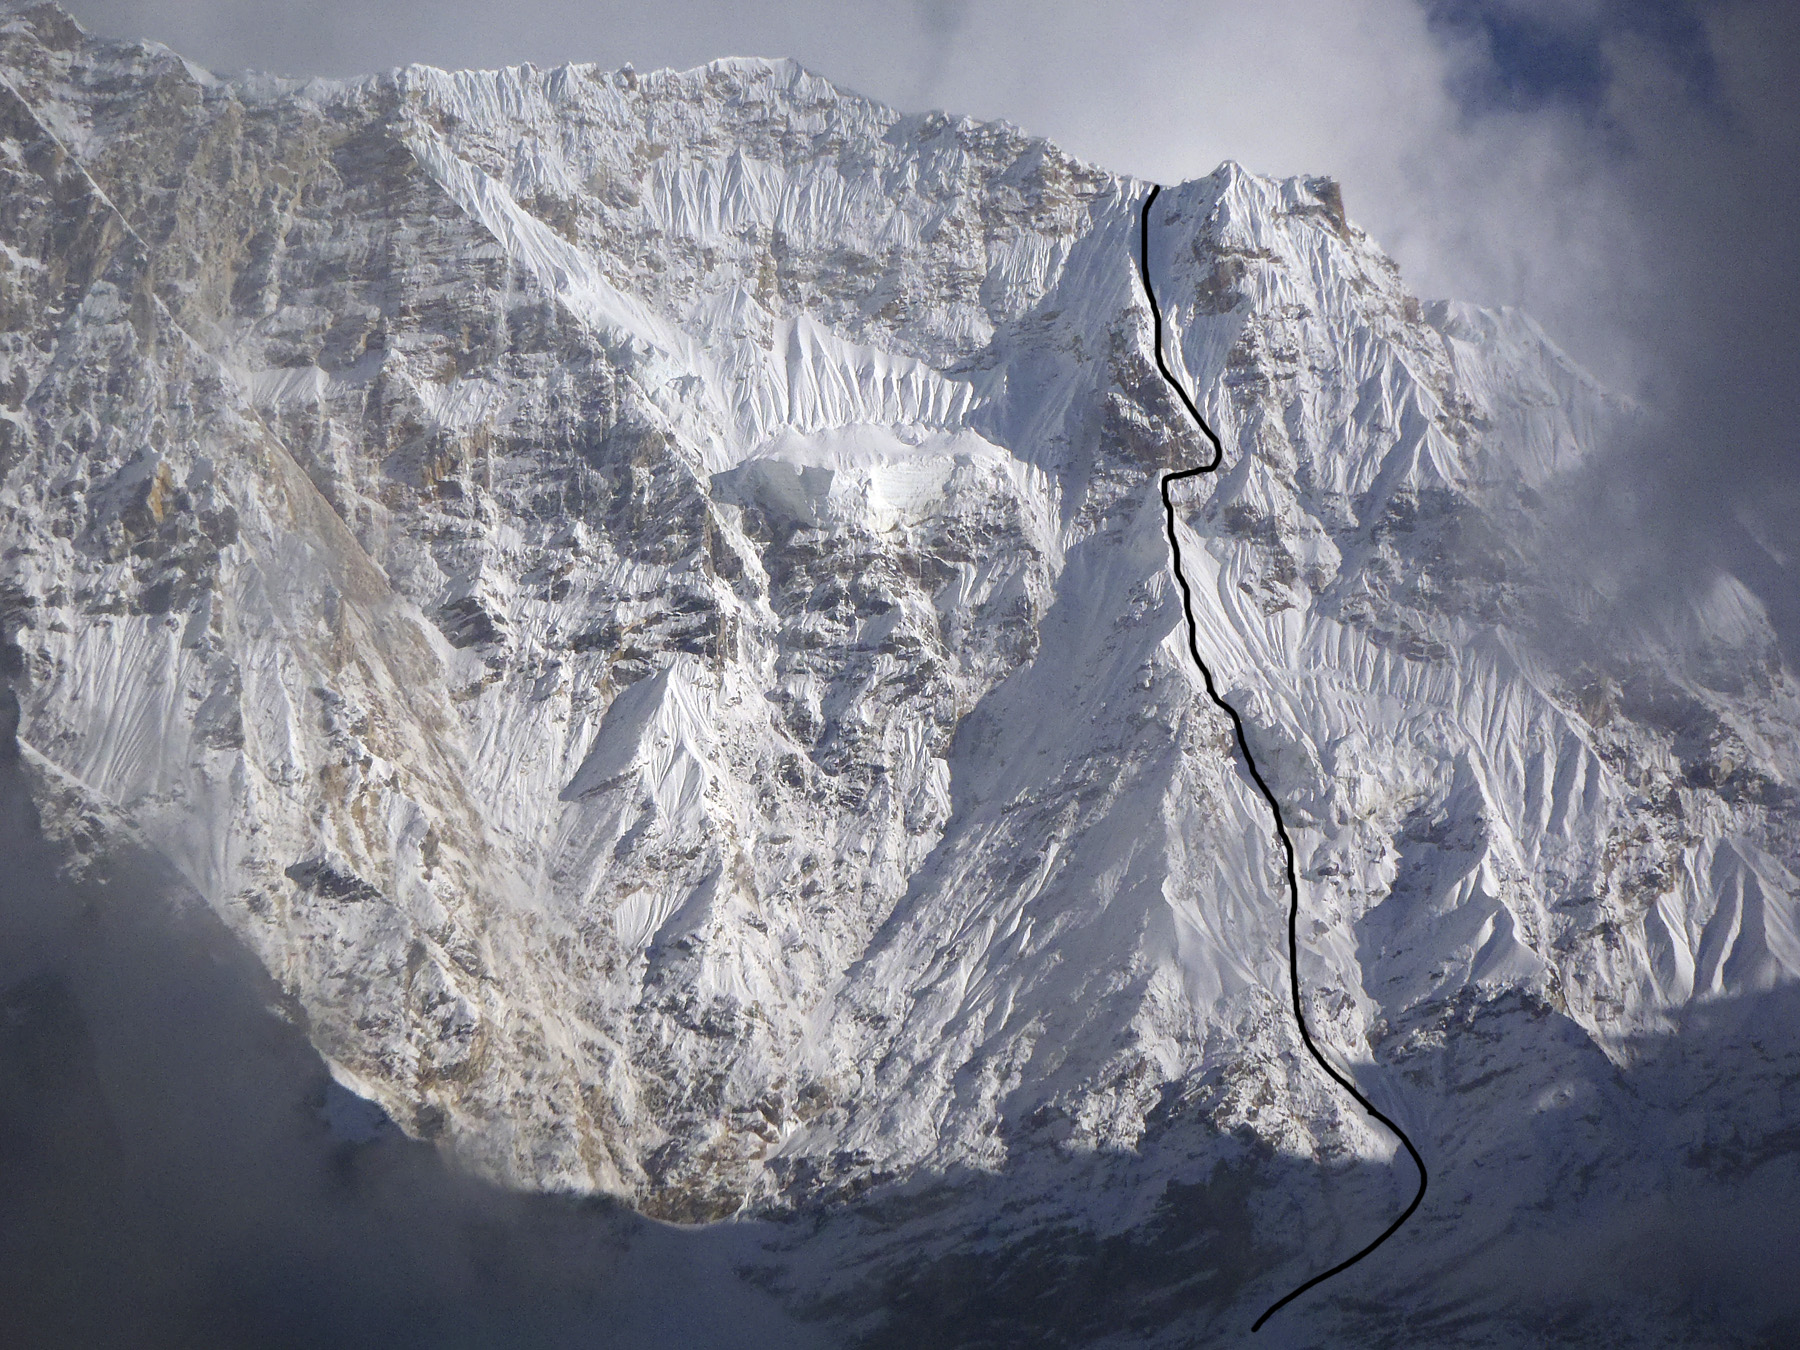 Belarus-Russian route up the northwest face of Manaslu shoulder to the ca 6,400m ridge. On the far side lies a large plateau - the upper Thulagi Glacier - rimmed with high peaks.